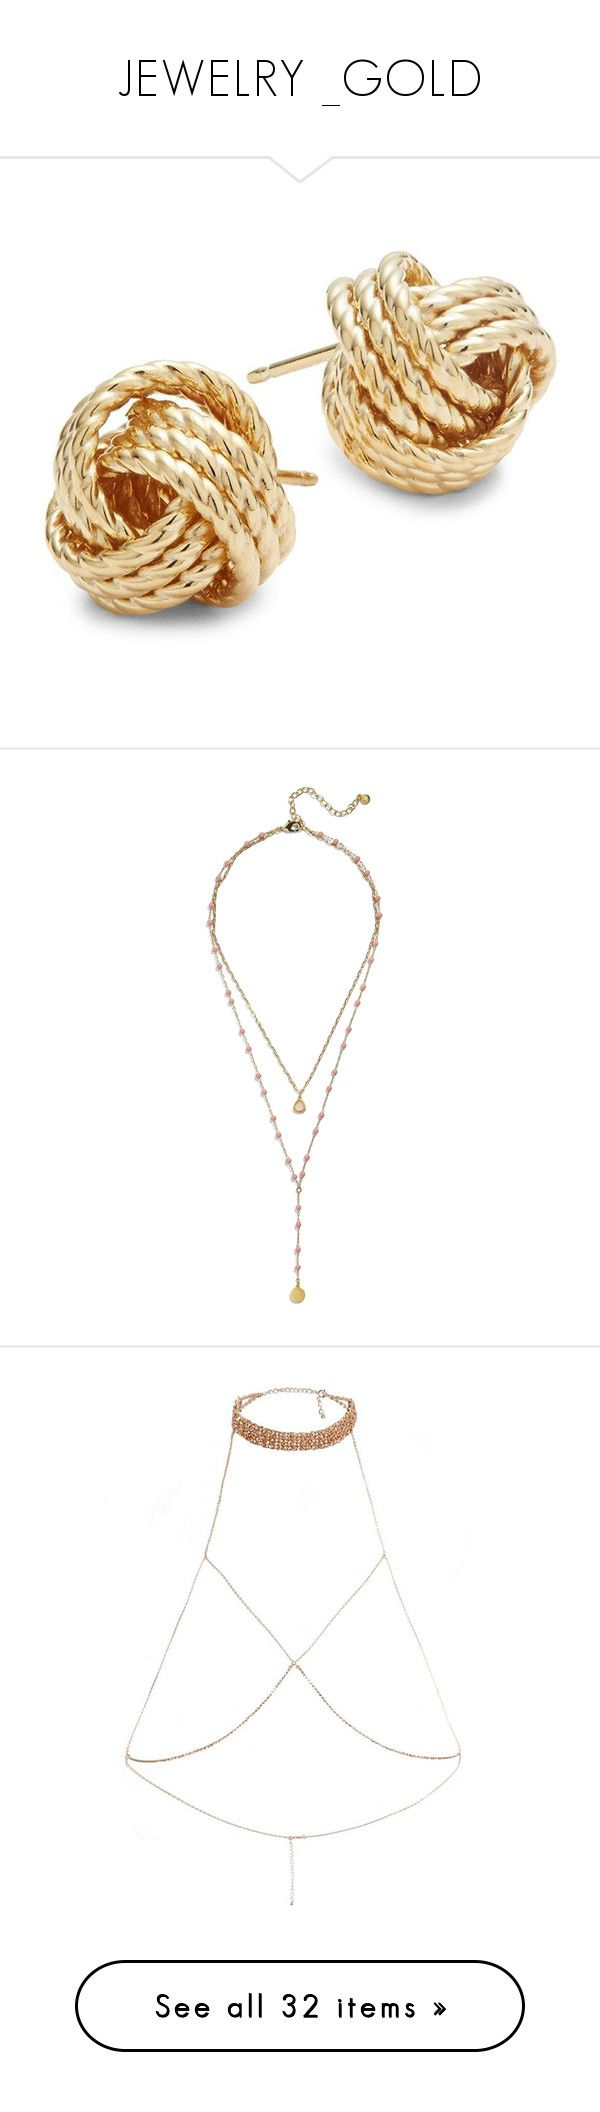 """JEWELRY _GOLD"" by yogalover1960 ❤ liked on Polyvore featuring jewelry, earrings, accessories, yellow gold stud earrings, 14k gold jewelry, 14k yellow gold earrings, 14 karat gold earrings, nautical earrings, necklaces and double layer pendant necklace"